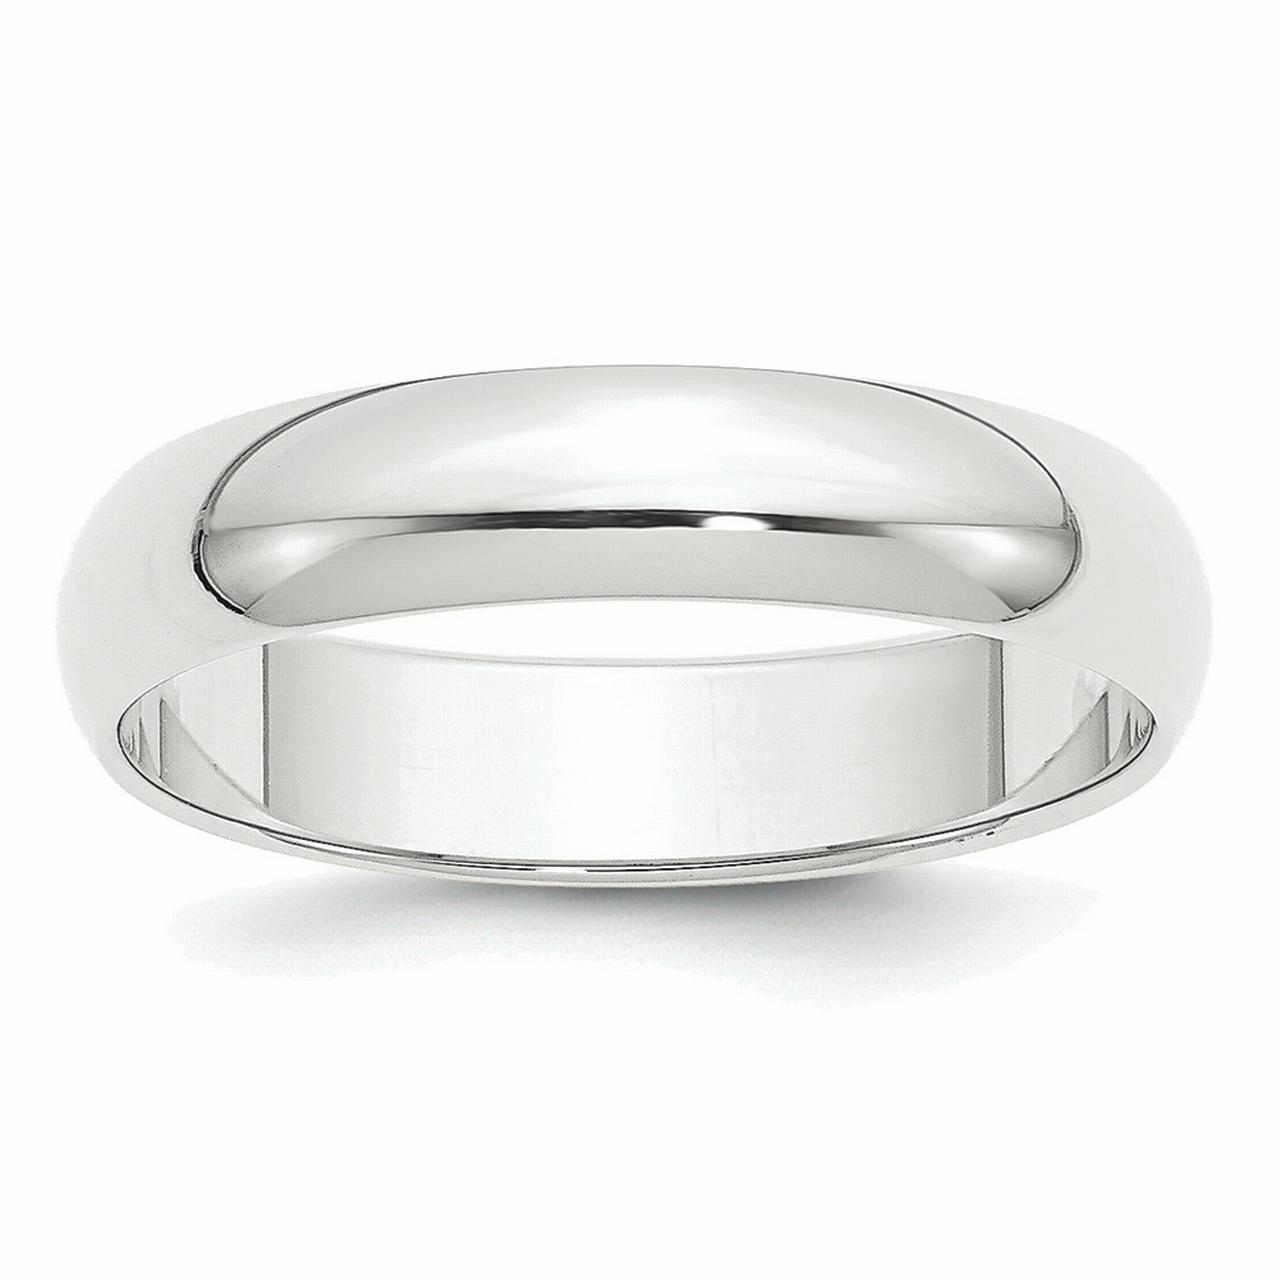 Platinum 5mm Half-Round Featherweight Band Ring PLWHR050 by